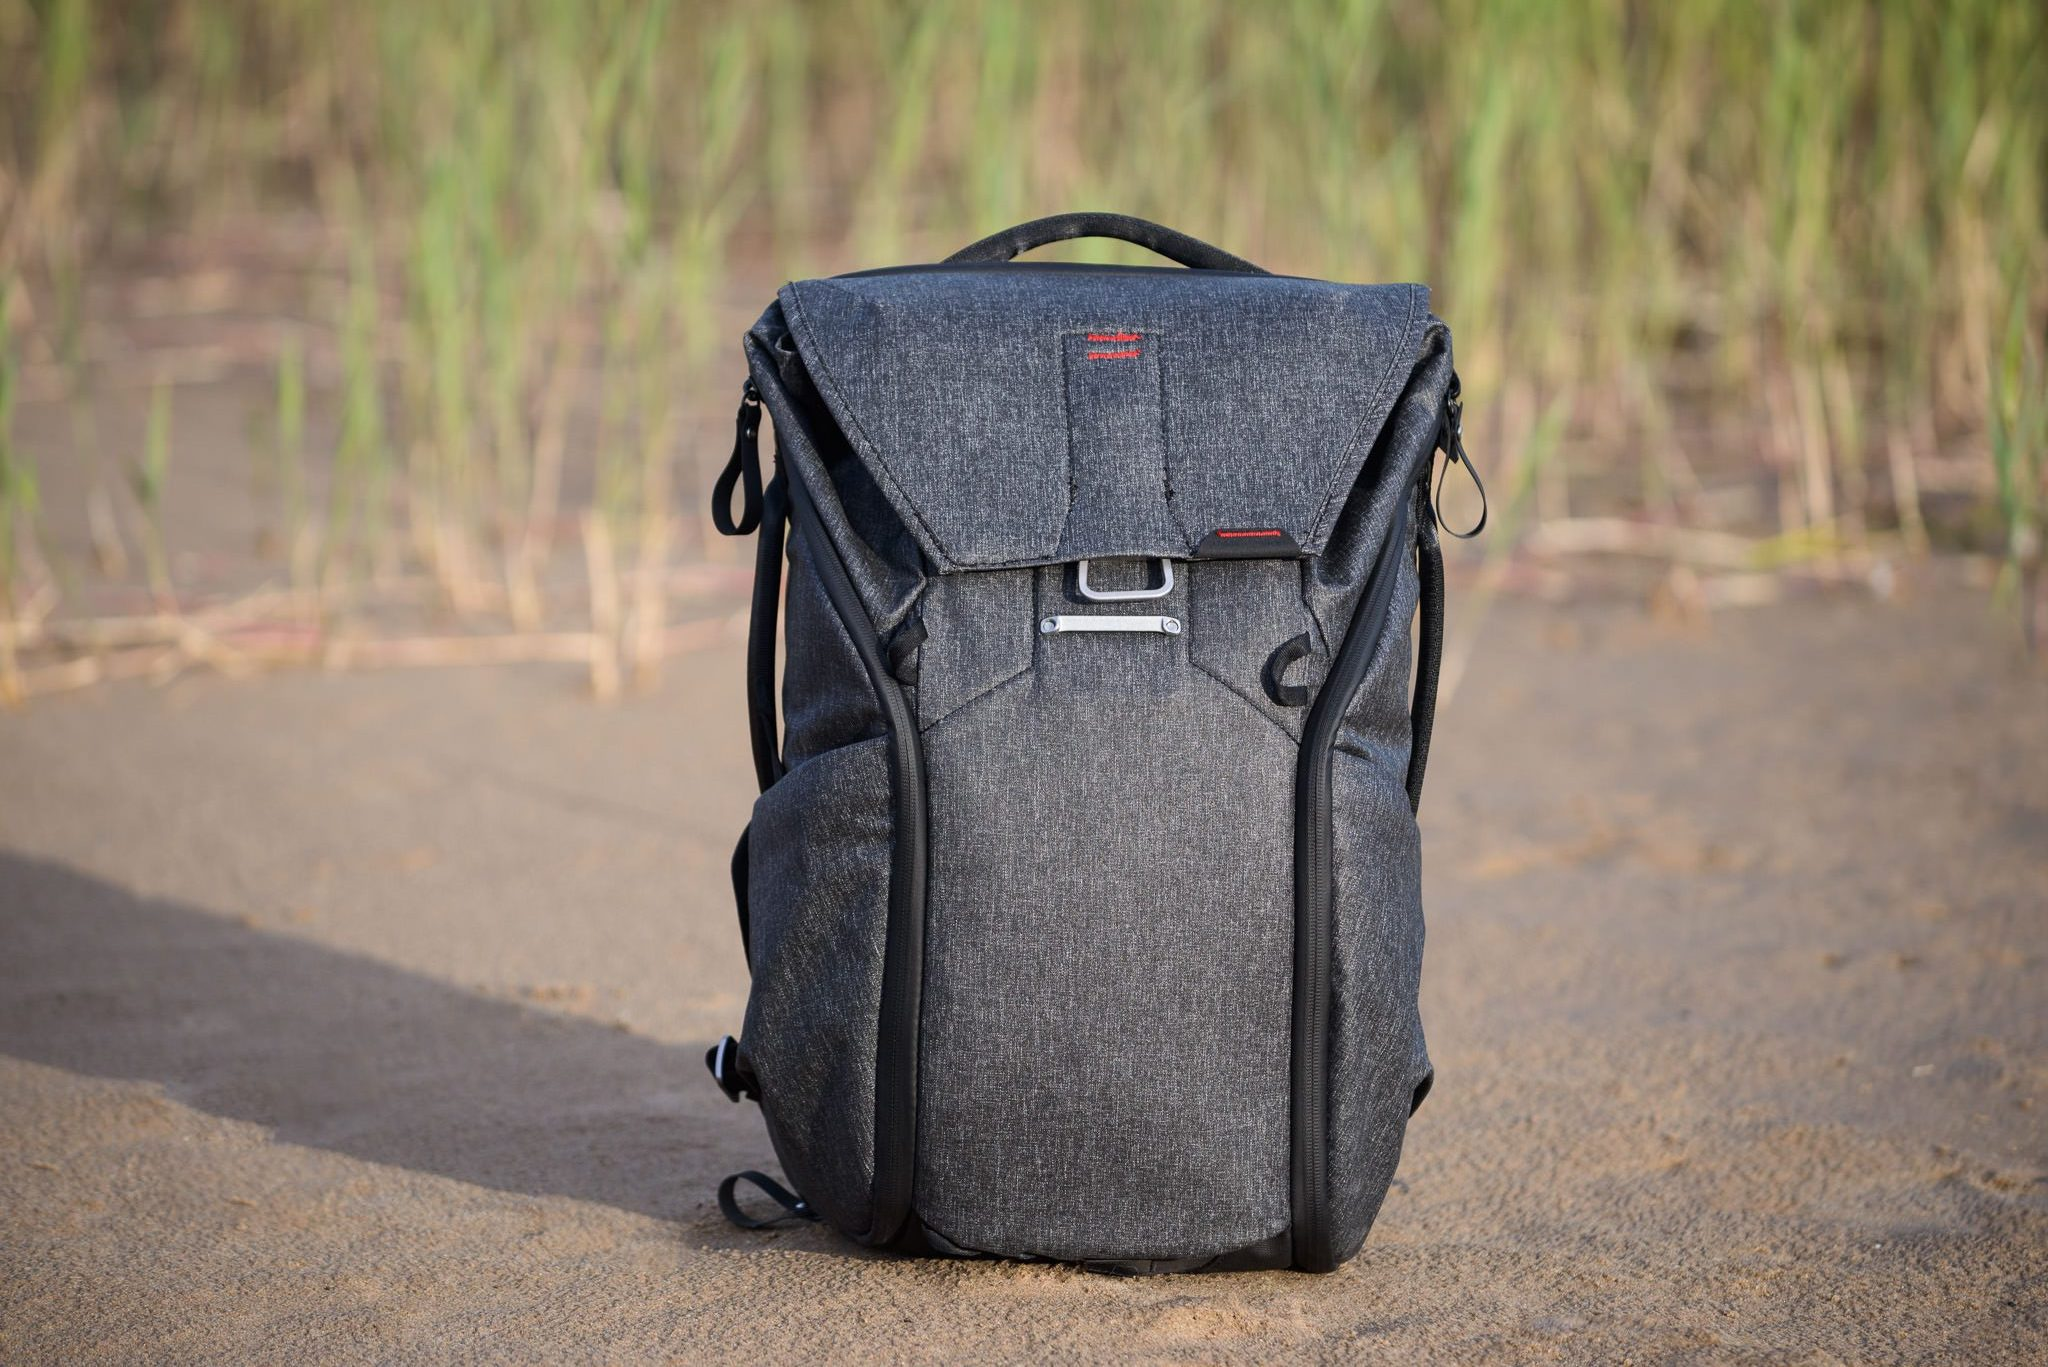 Peak design 20L everyday backpack. NIKON D800E + 70-200mm f 4   145mm 79a85f7e017de